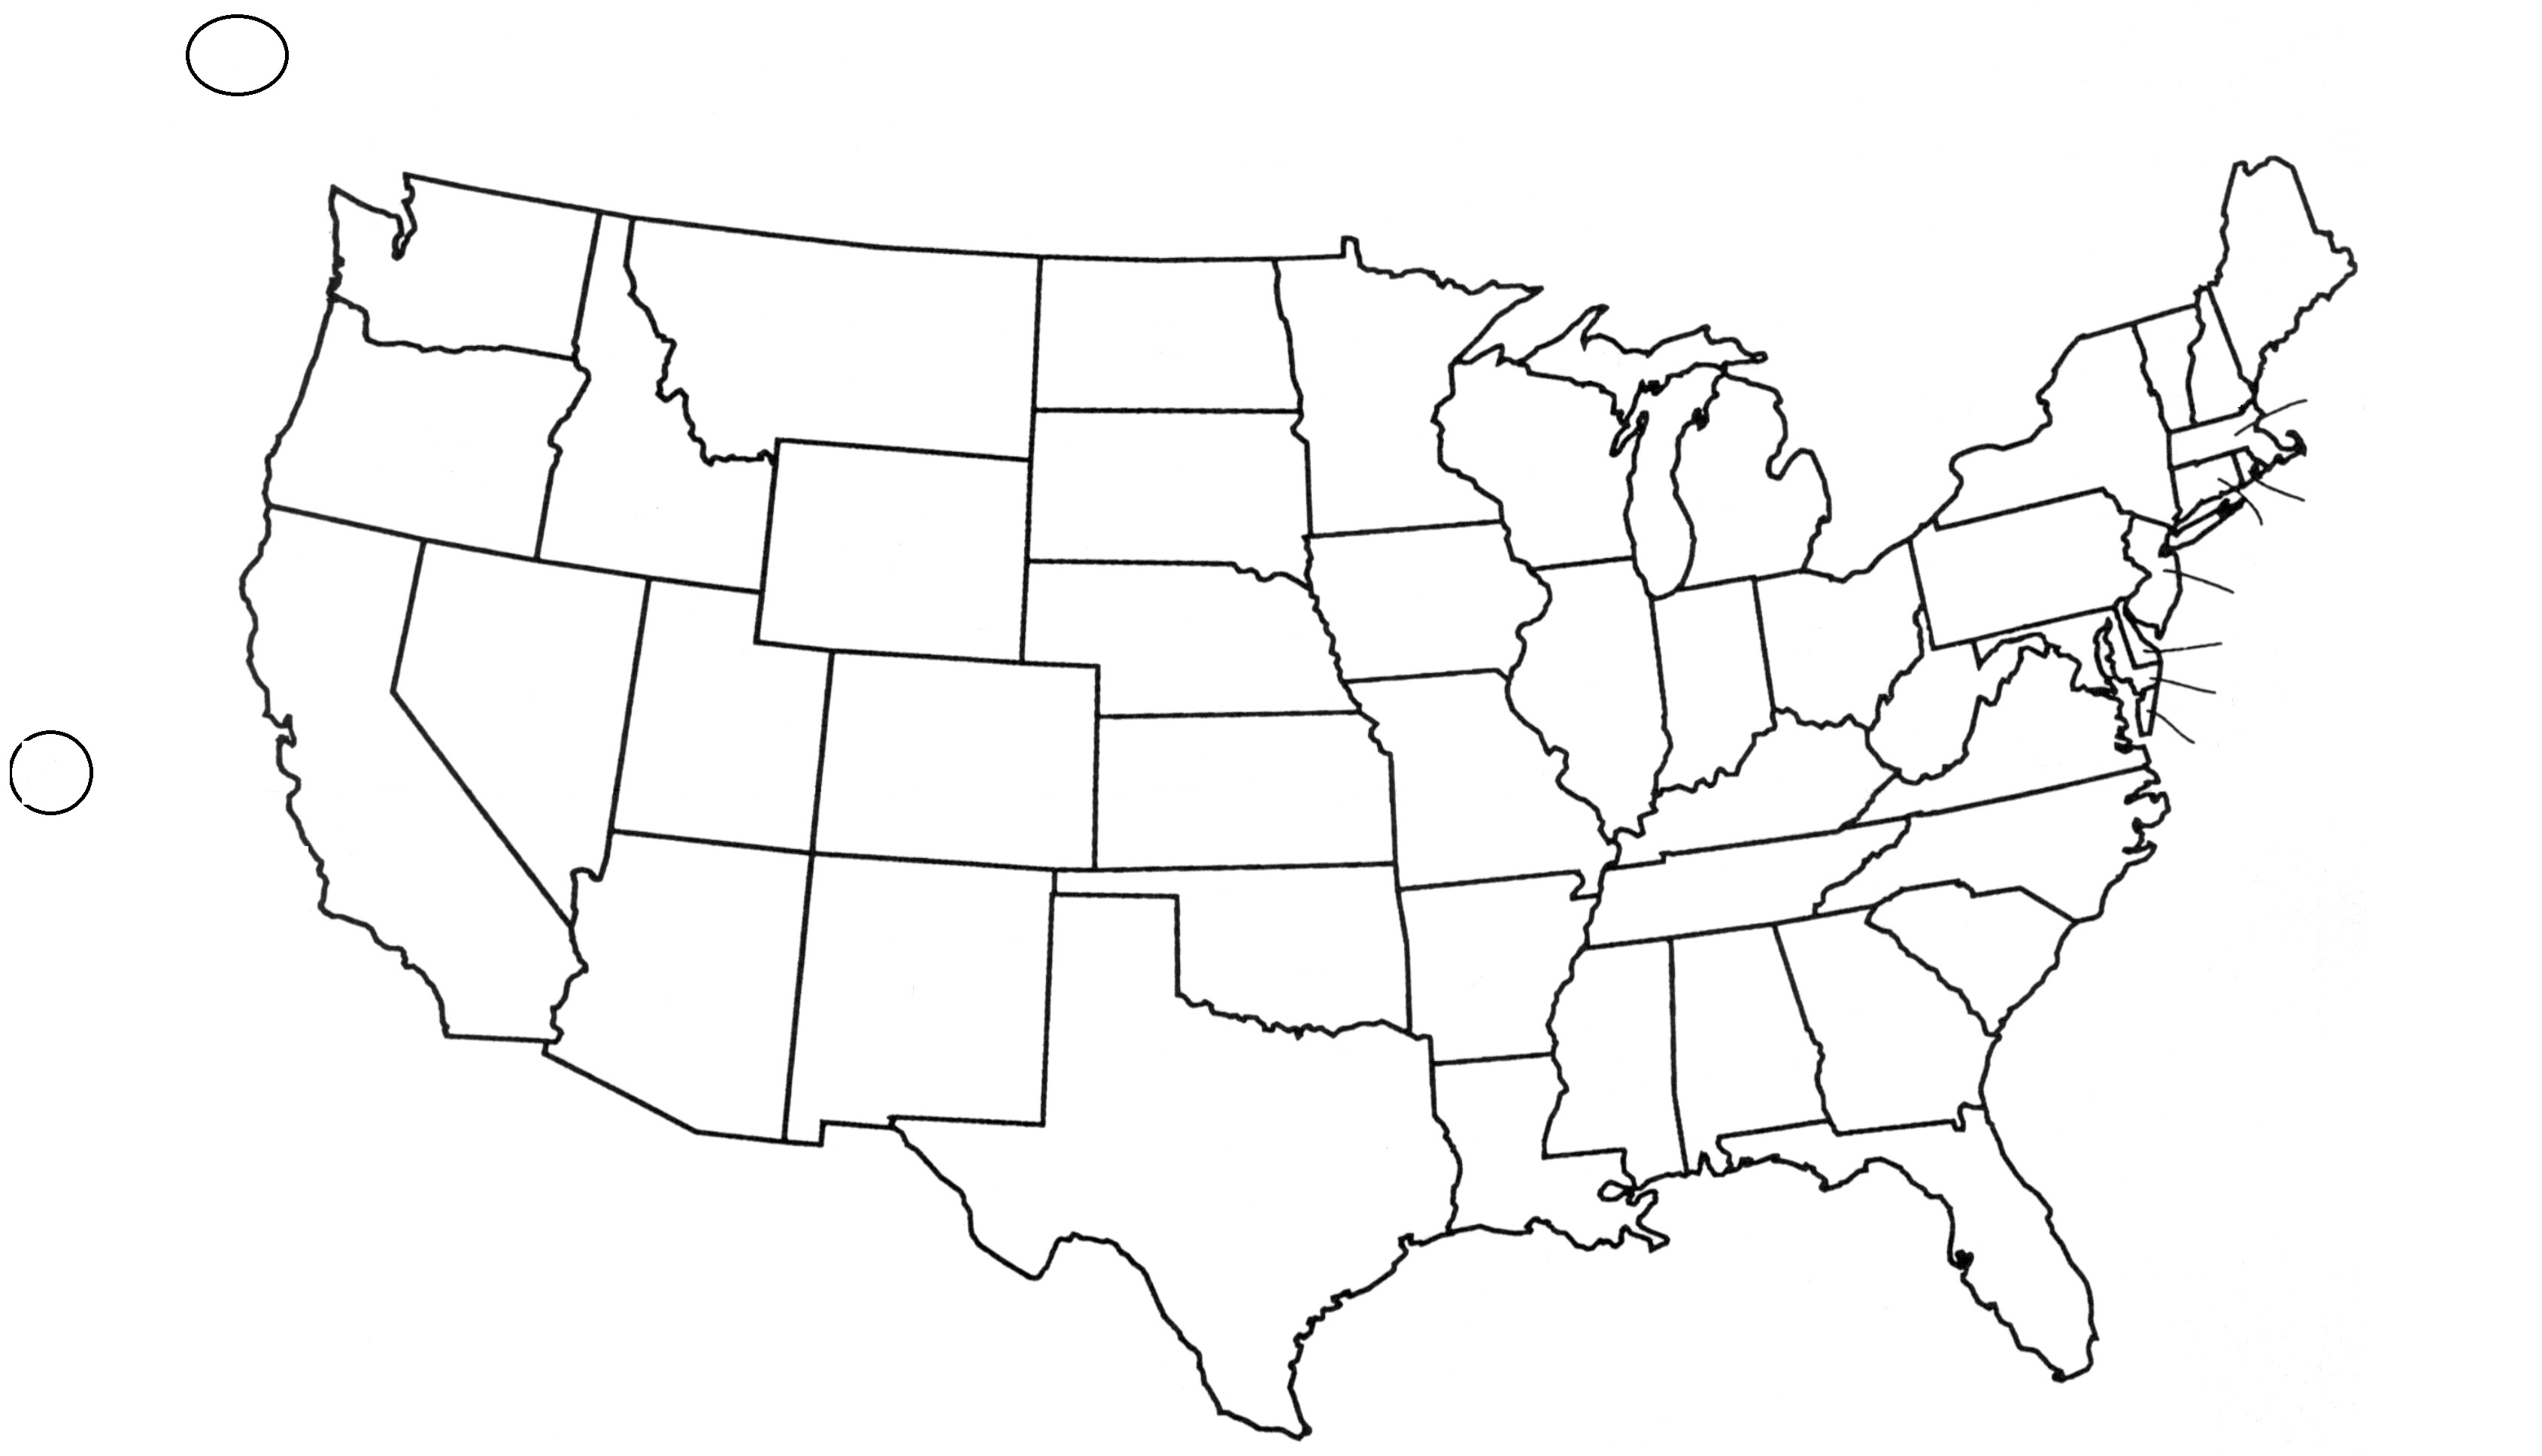 abbreviations or the common core math review game it is helpful to have a map of the united states